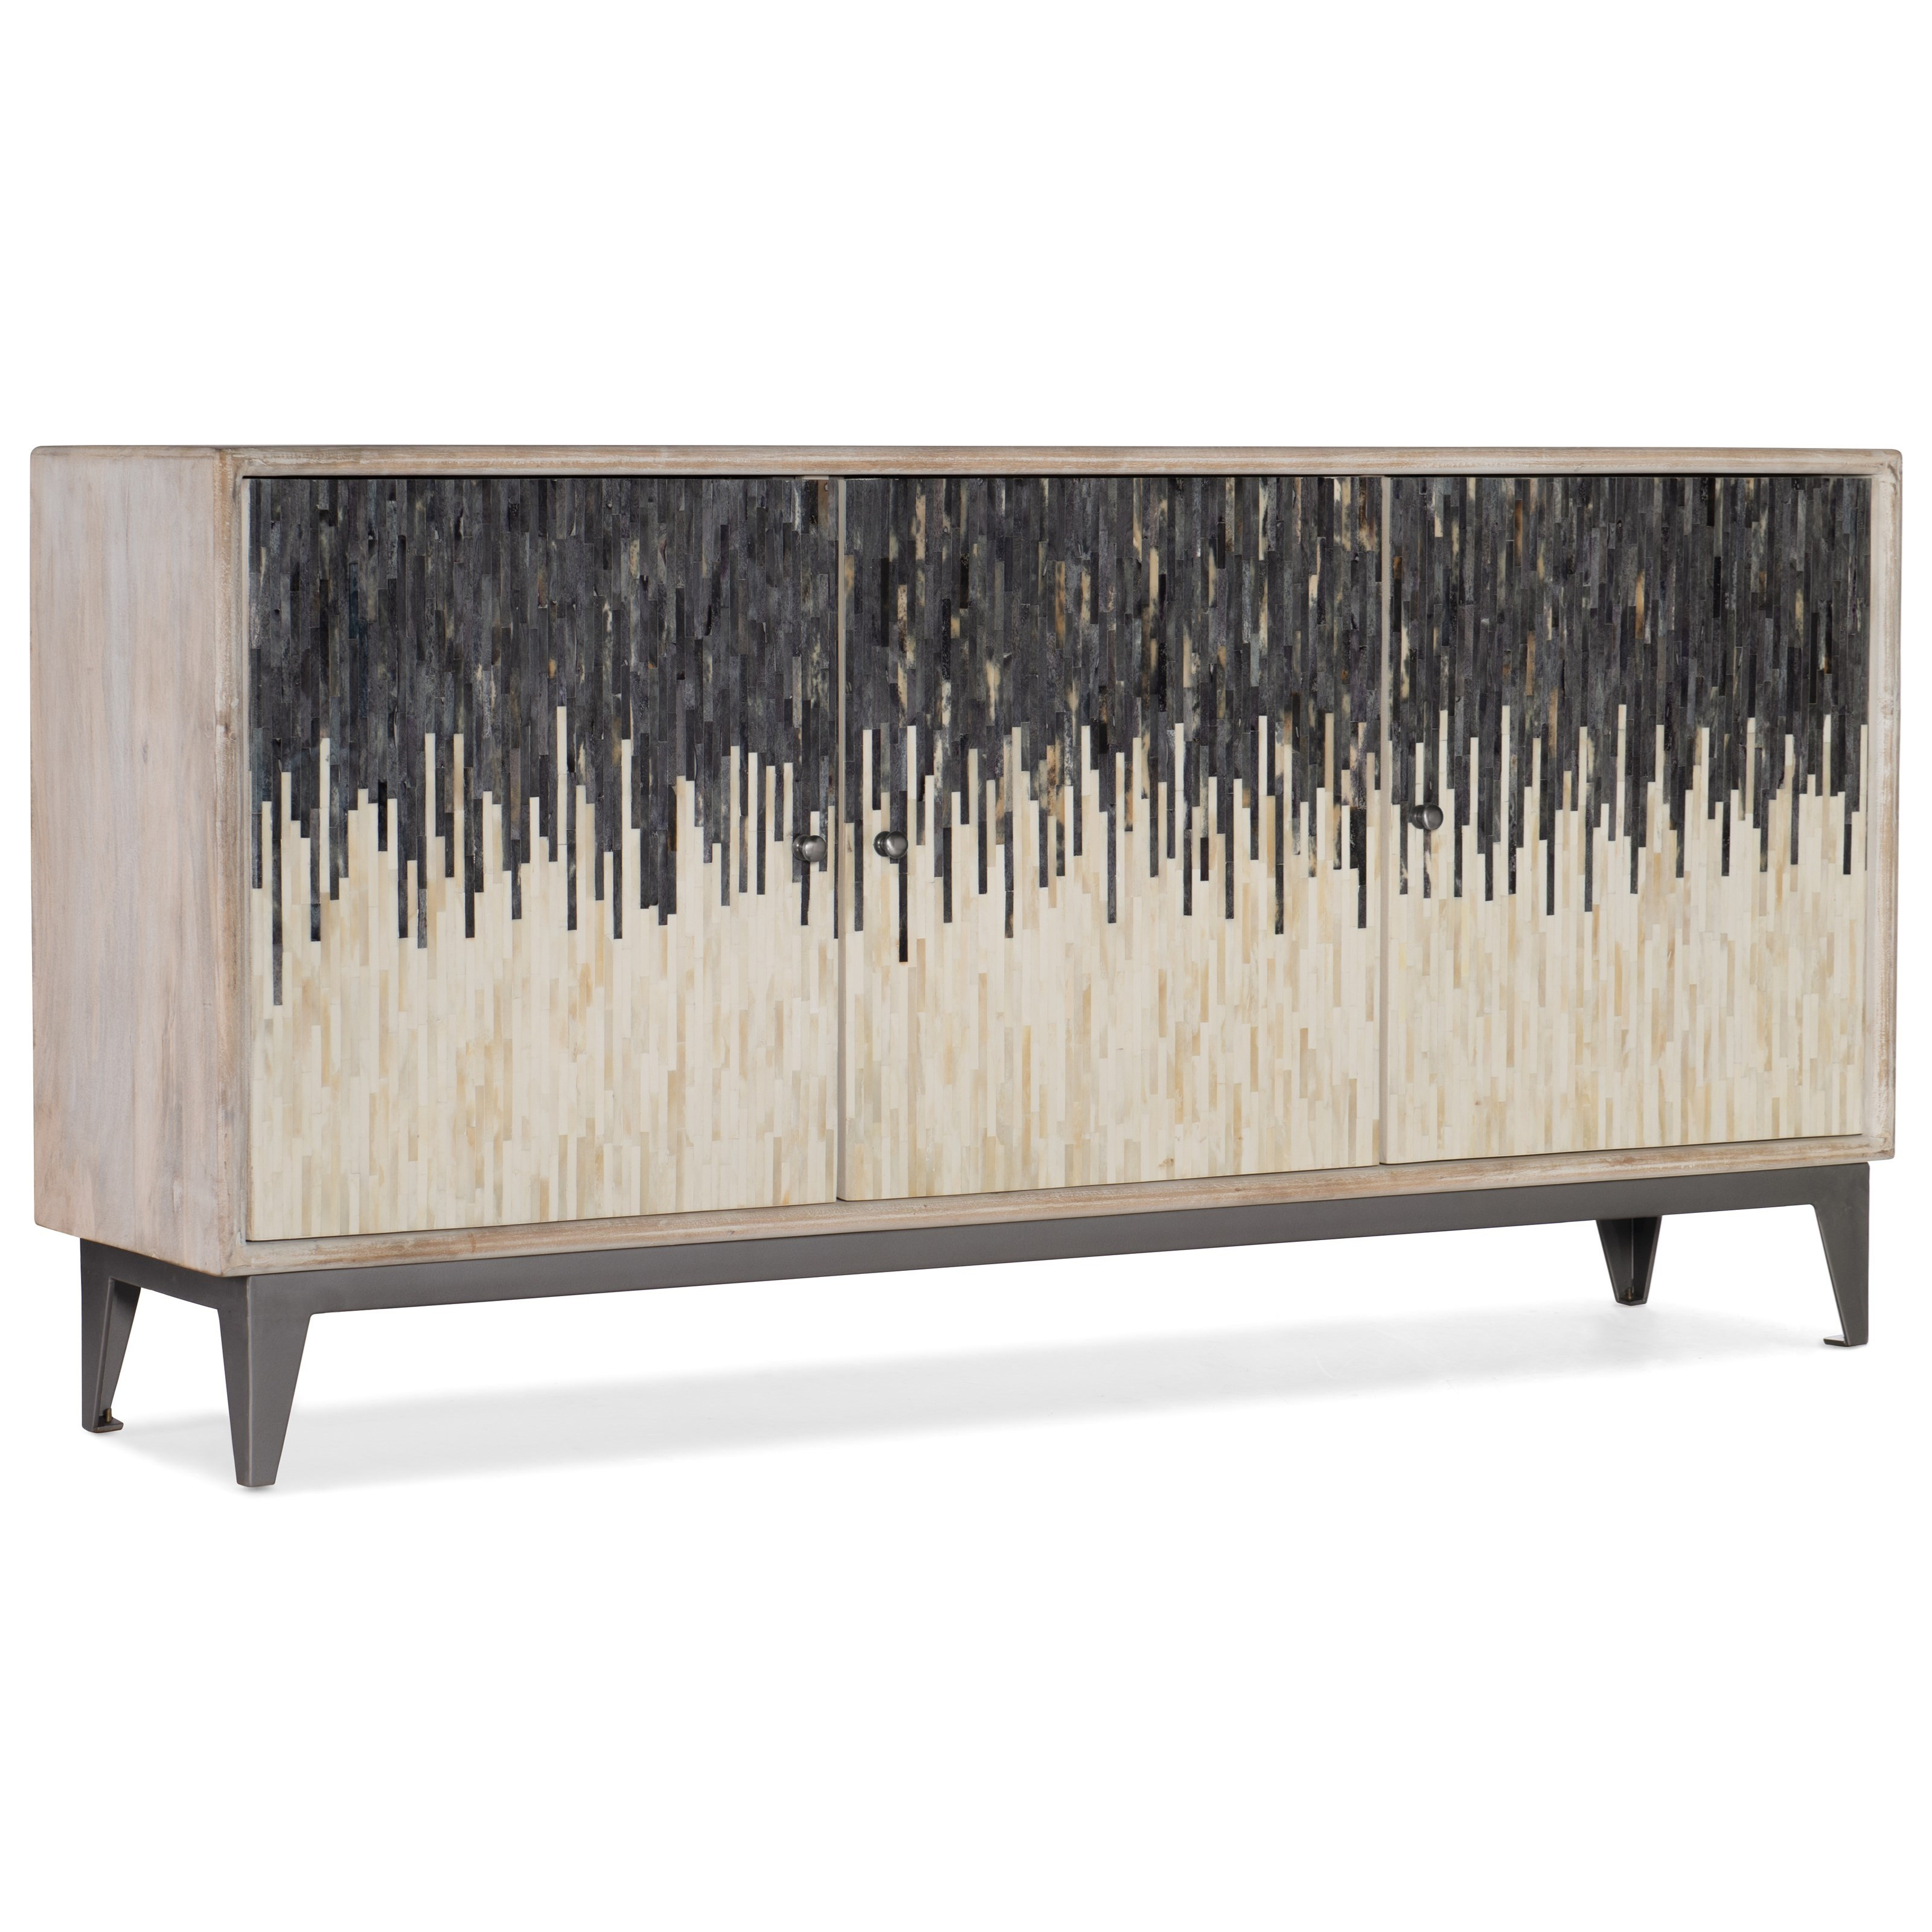 Living Room Accents Three Door Console by Hooker Furniture at Malouf Furniture Co.